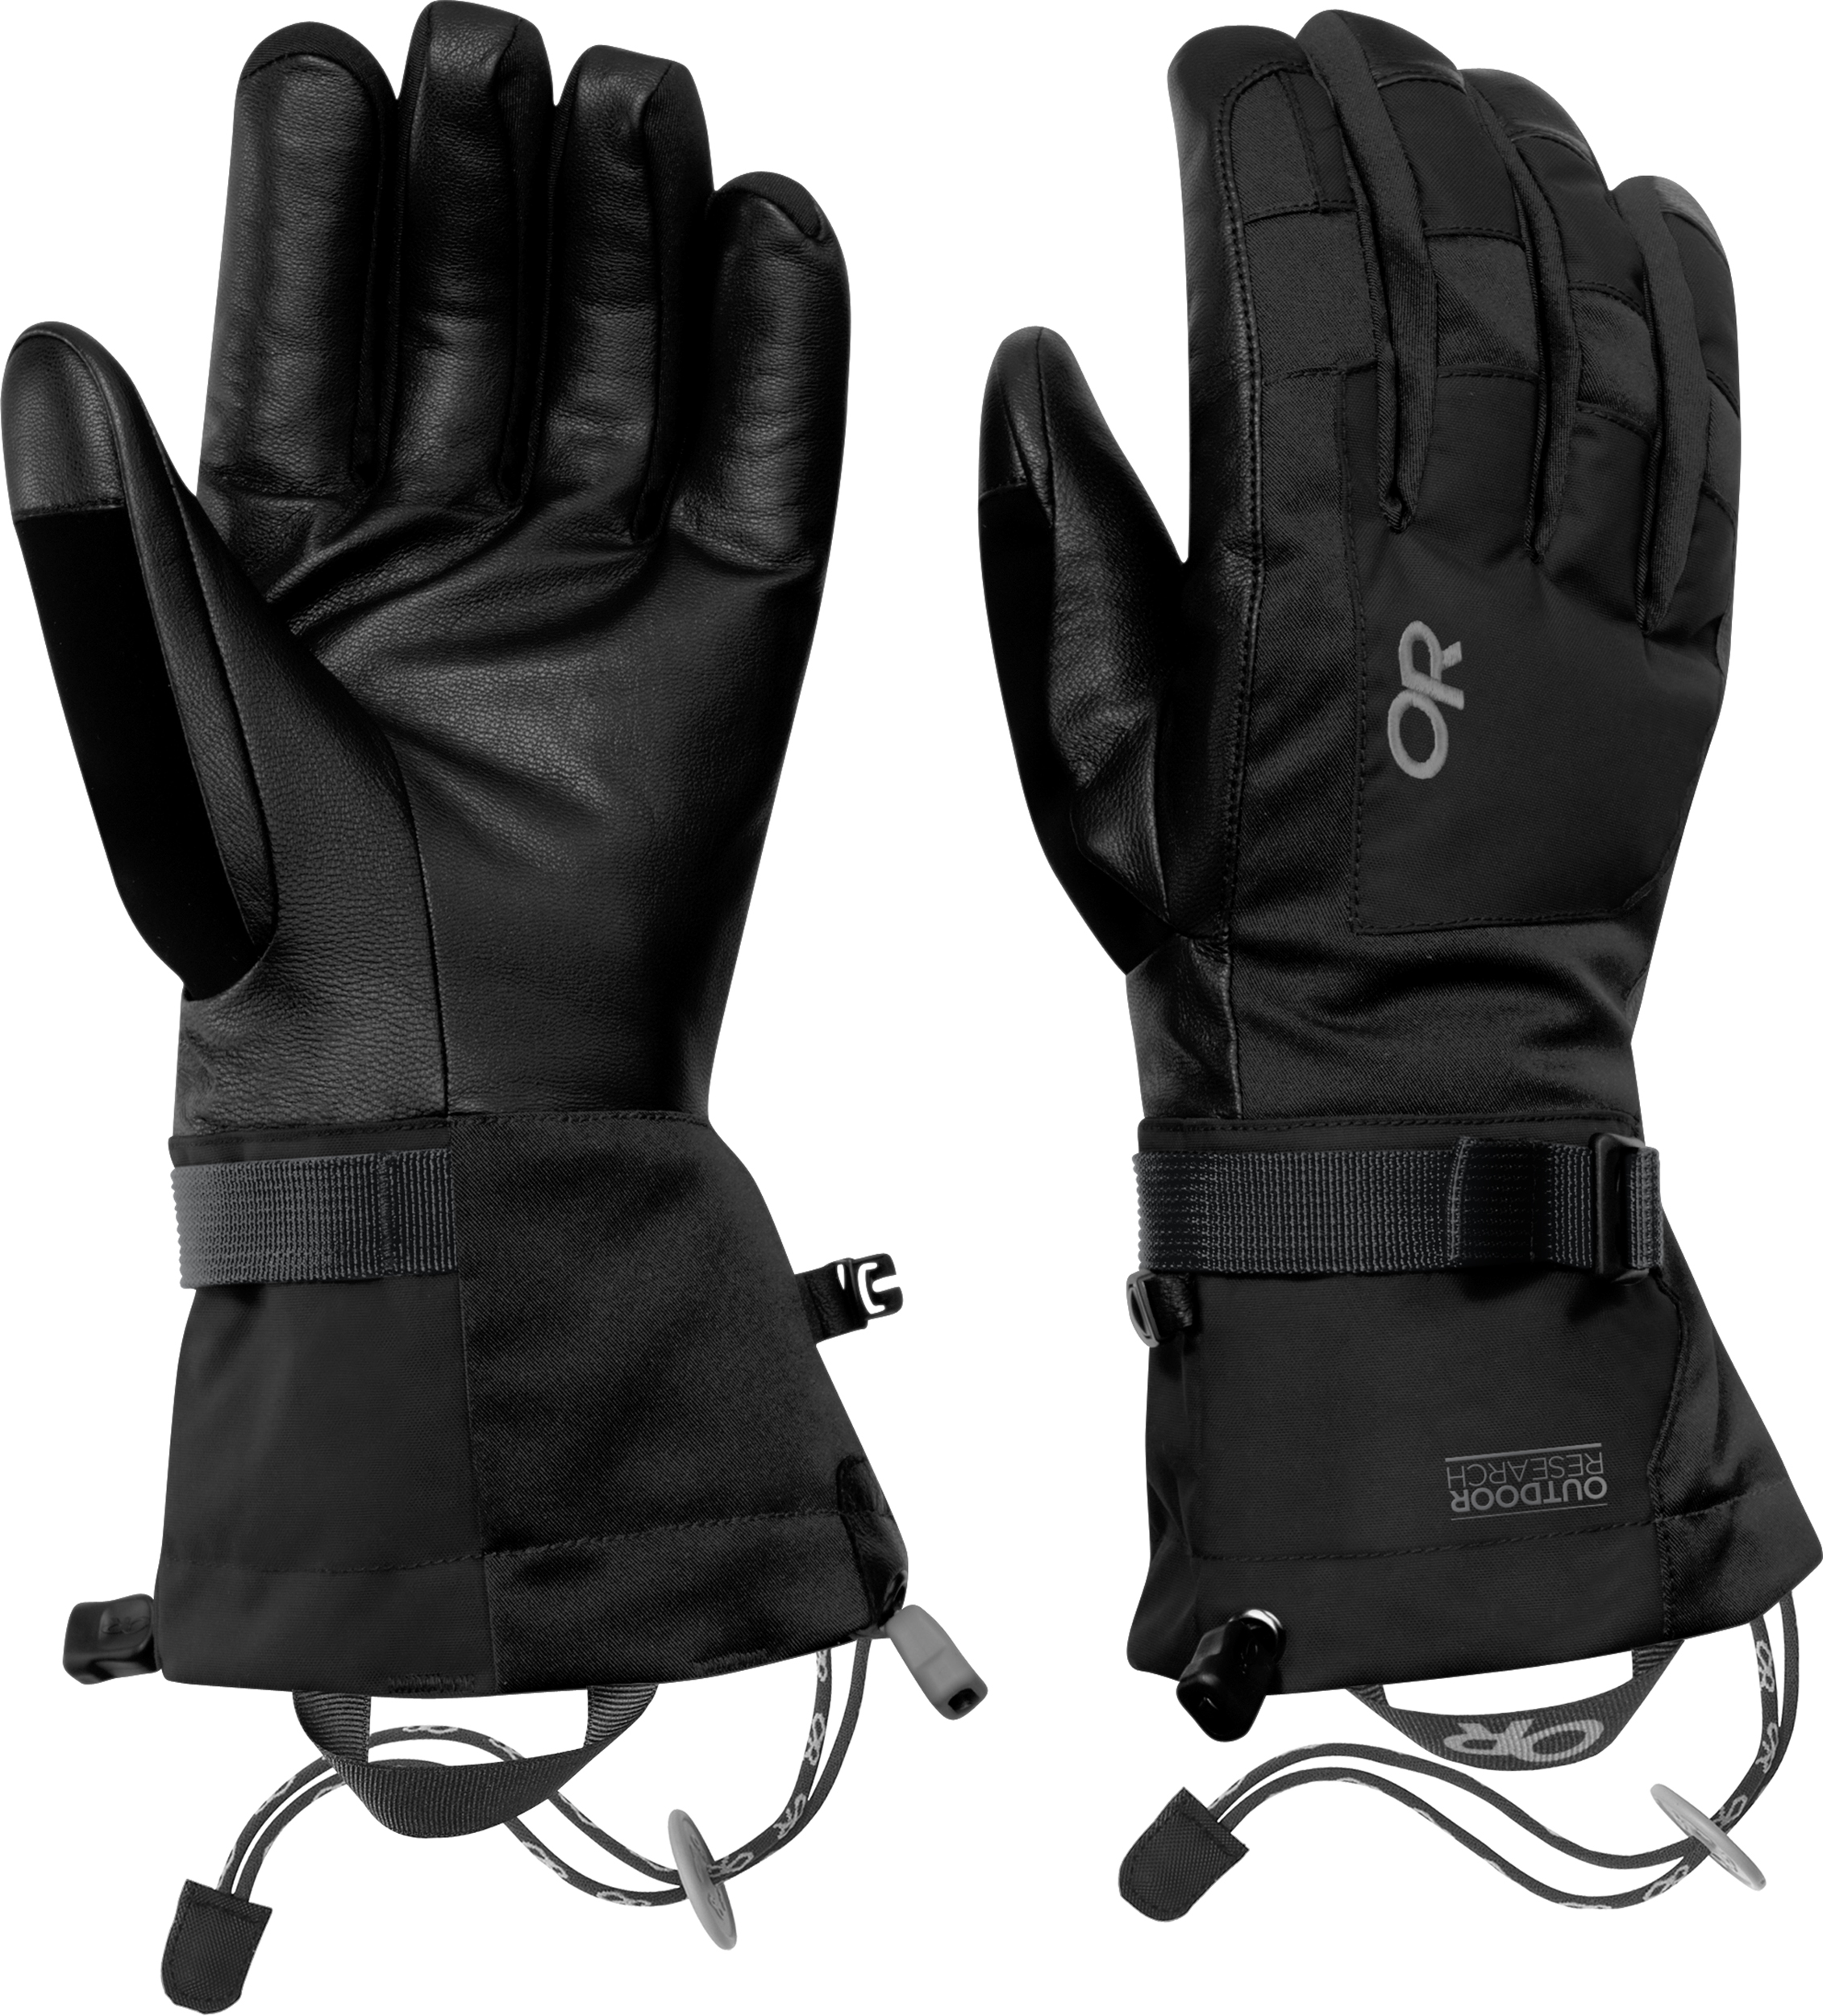 fed5989c5 Outdoor Research Revolution Gloves - Men's